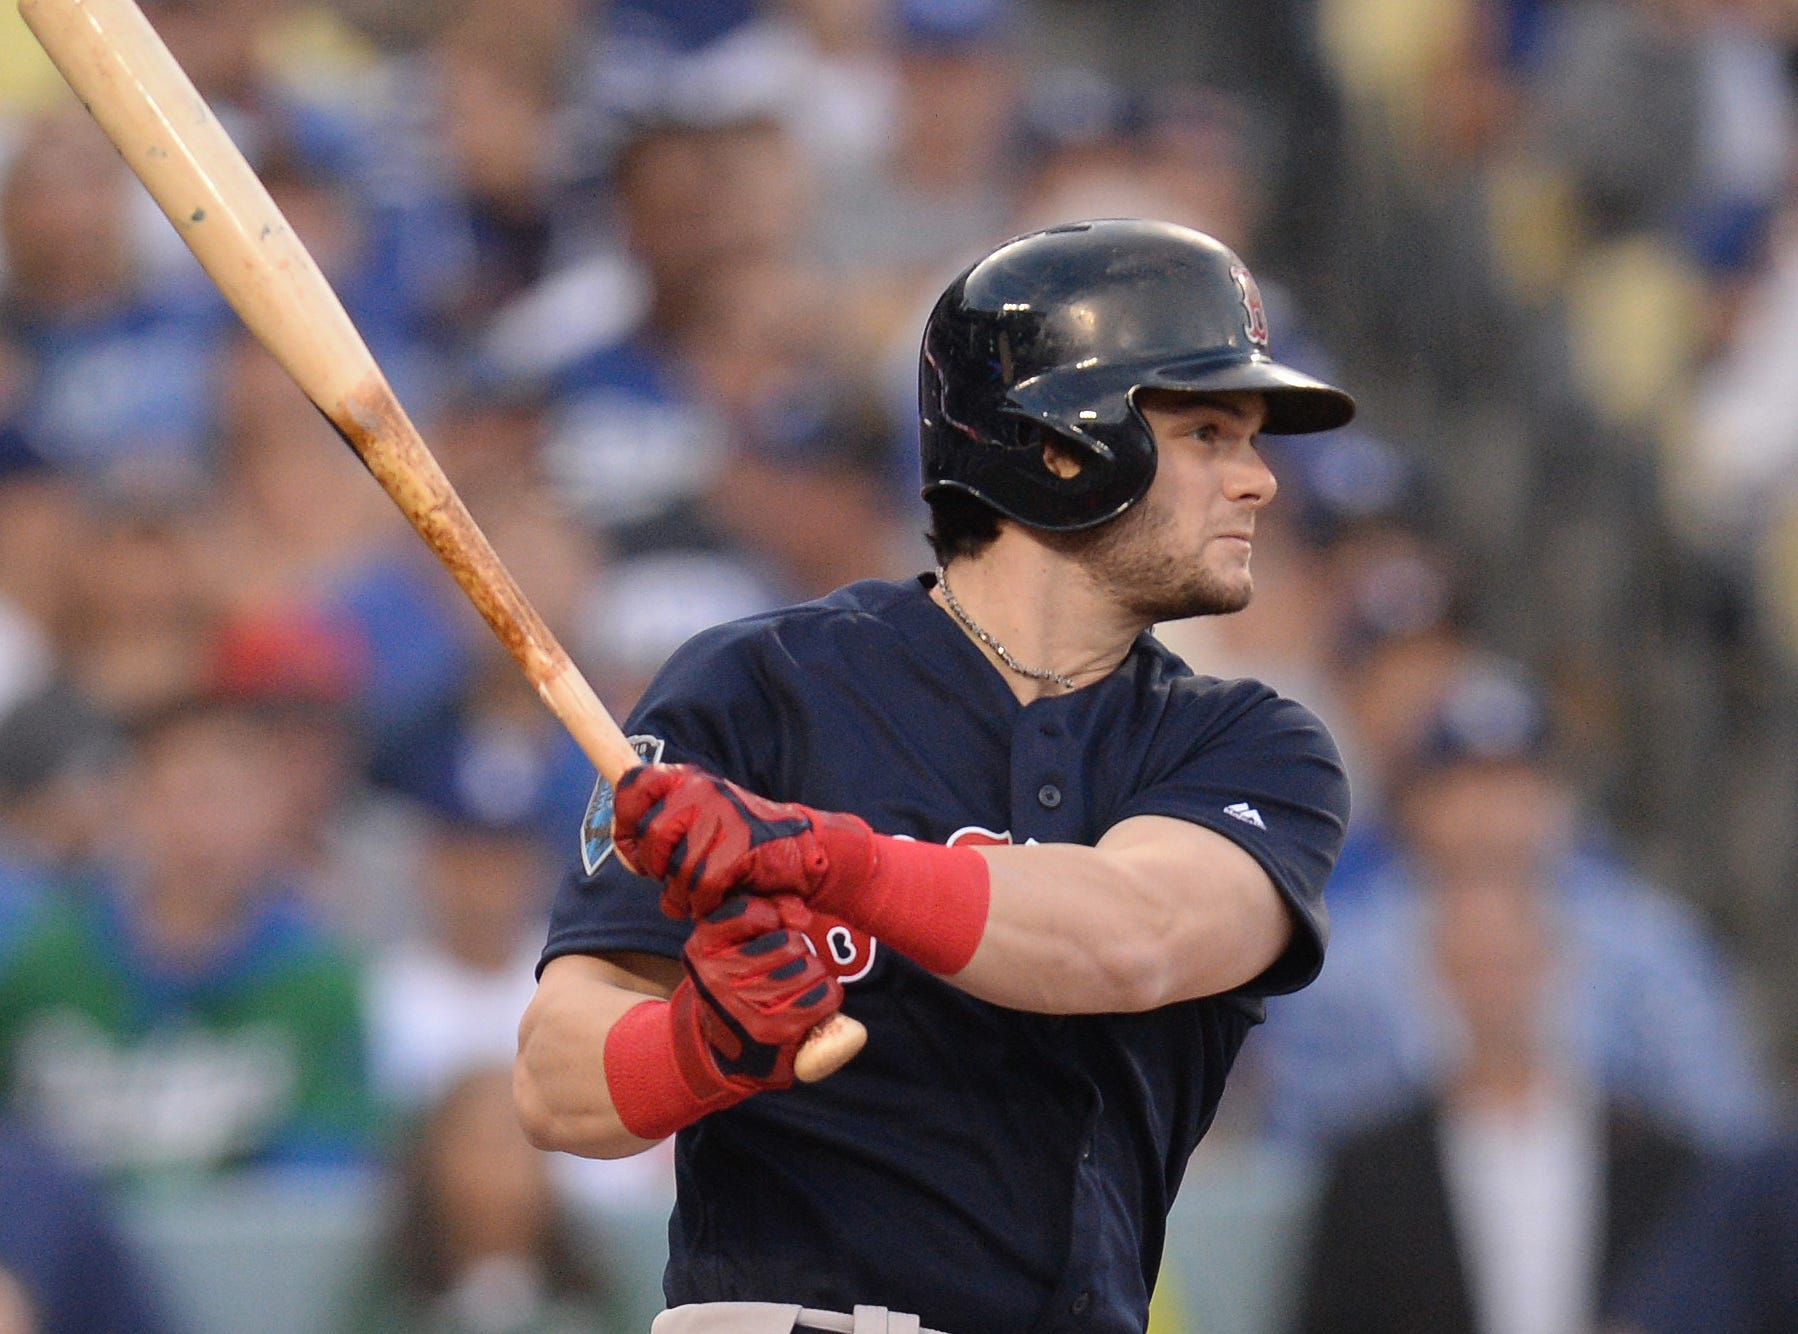 26. Andrew Benintendi, Boston Red Sox outfielder.